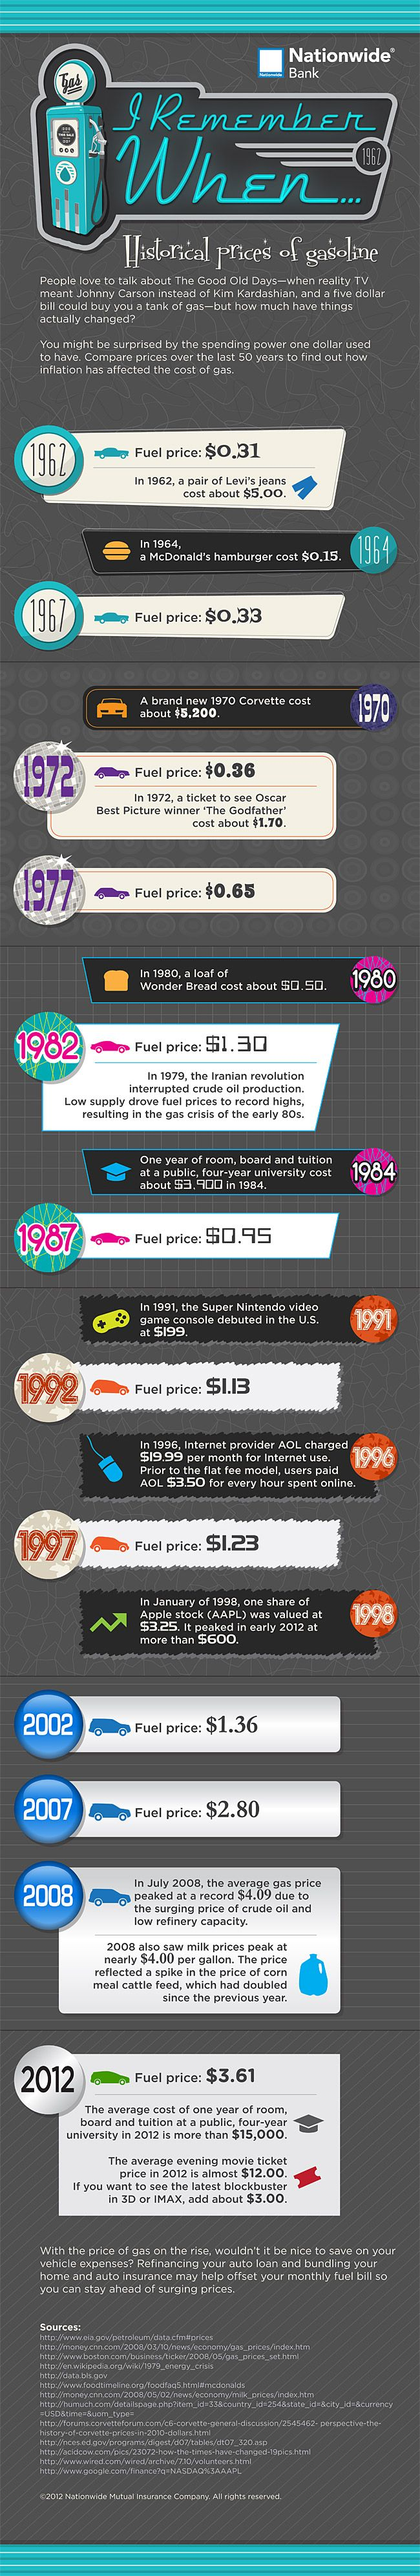 Wow! See how gas prices have gone up over the years, along with the cost of jeans, movie of tickets, and college tuition.